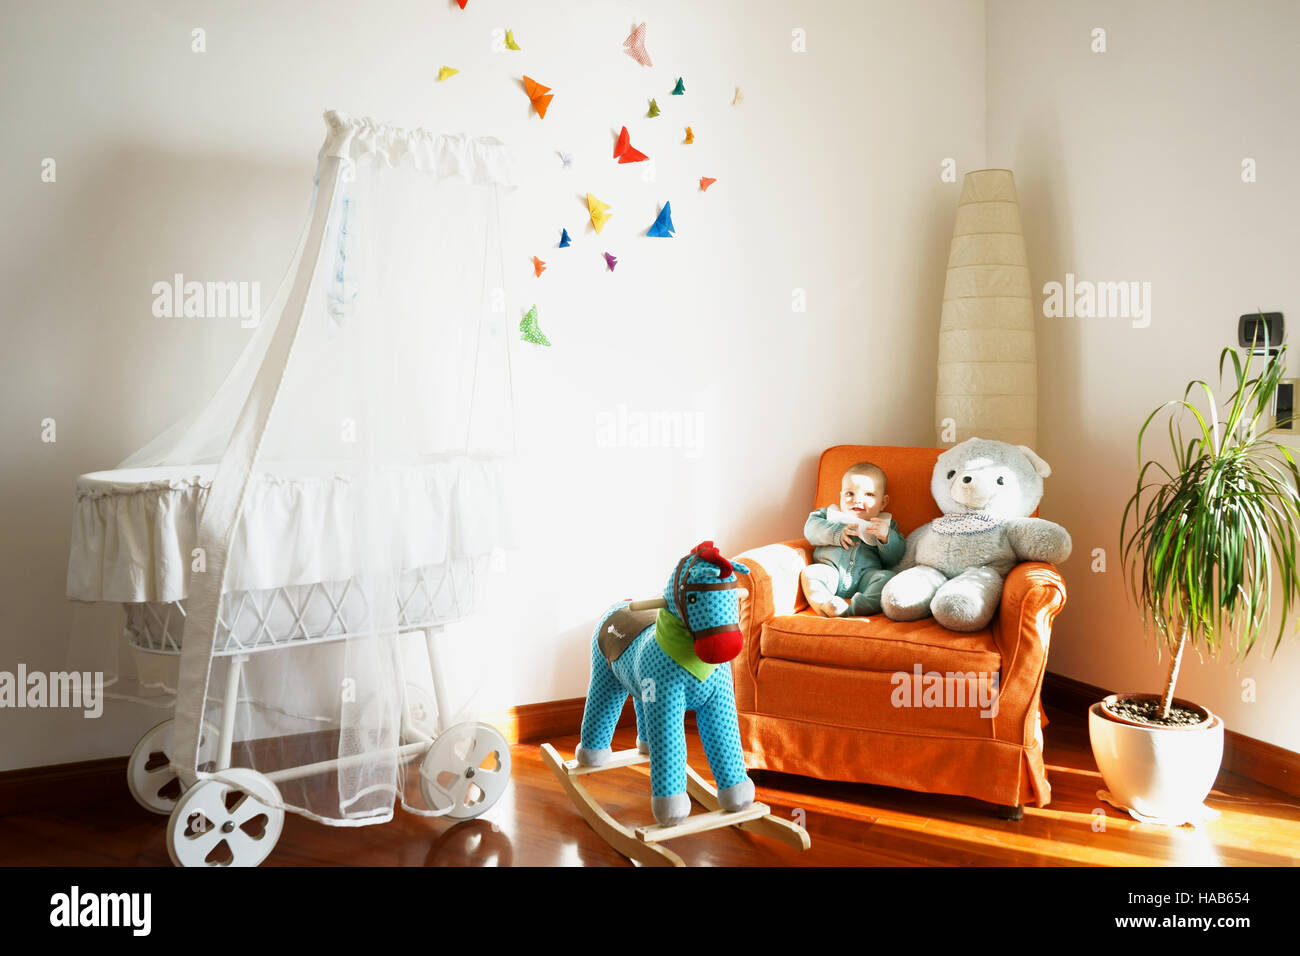 Baby Room Decor With Butterfly Origami And Toys